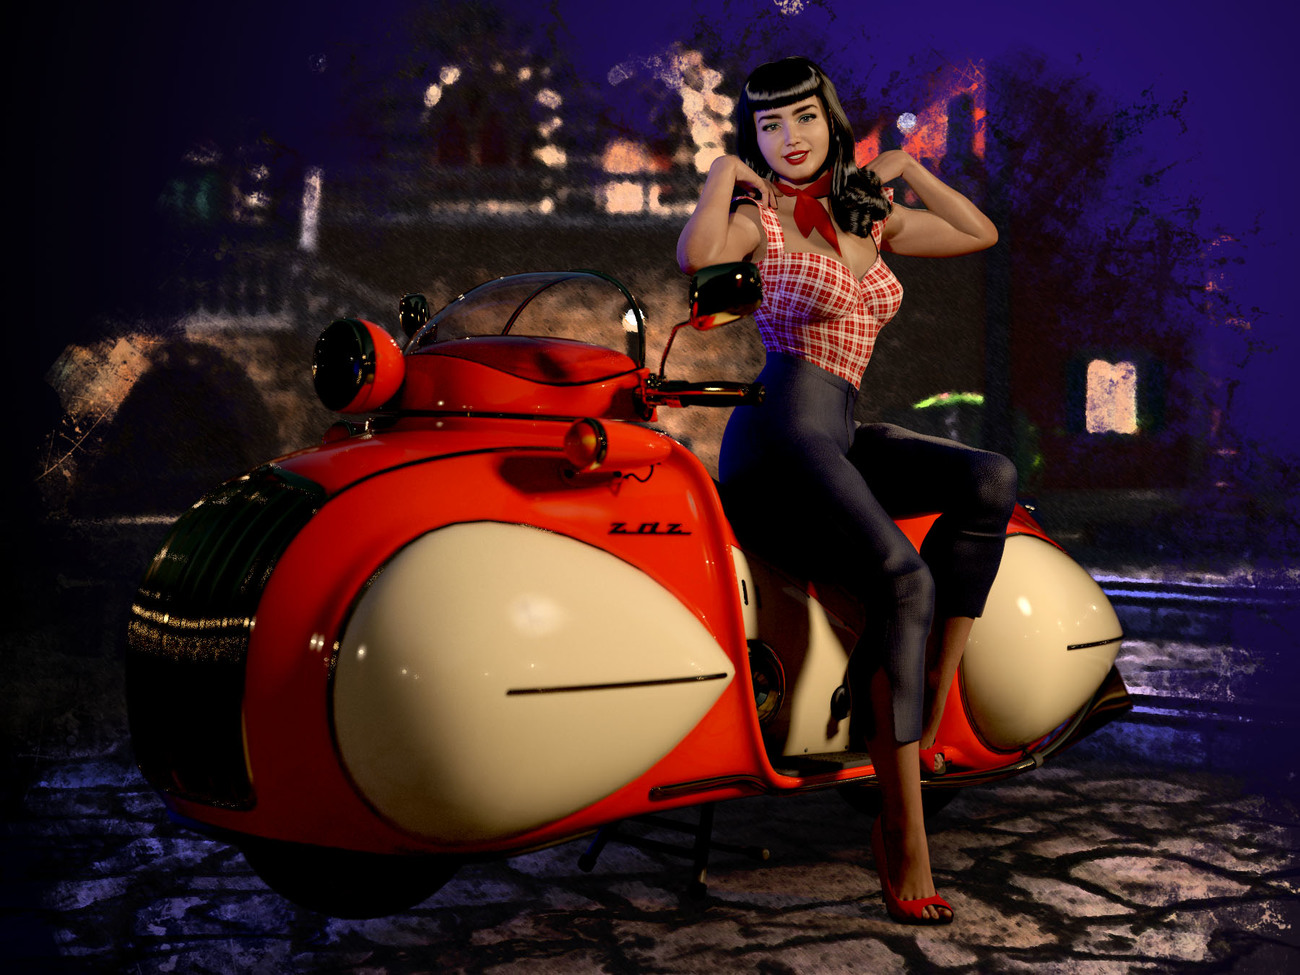 Betsy and the Streamlined Motorcycle by chriscox